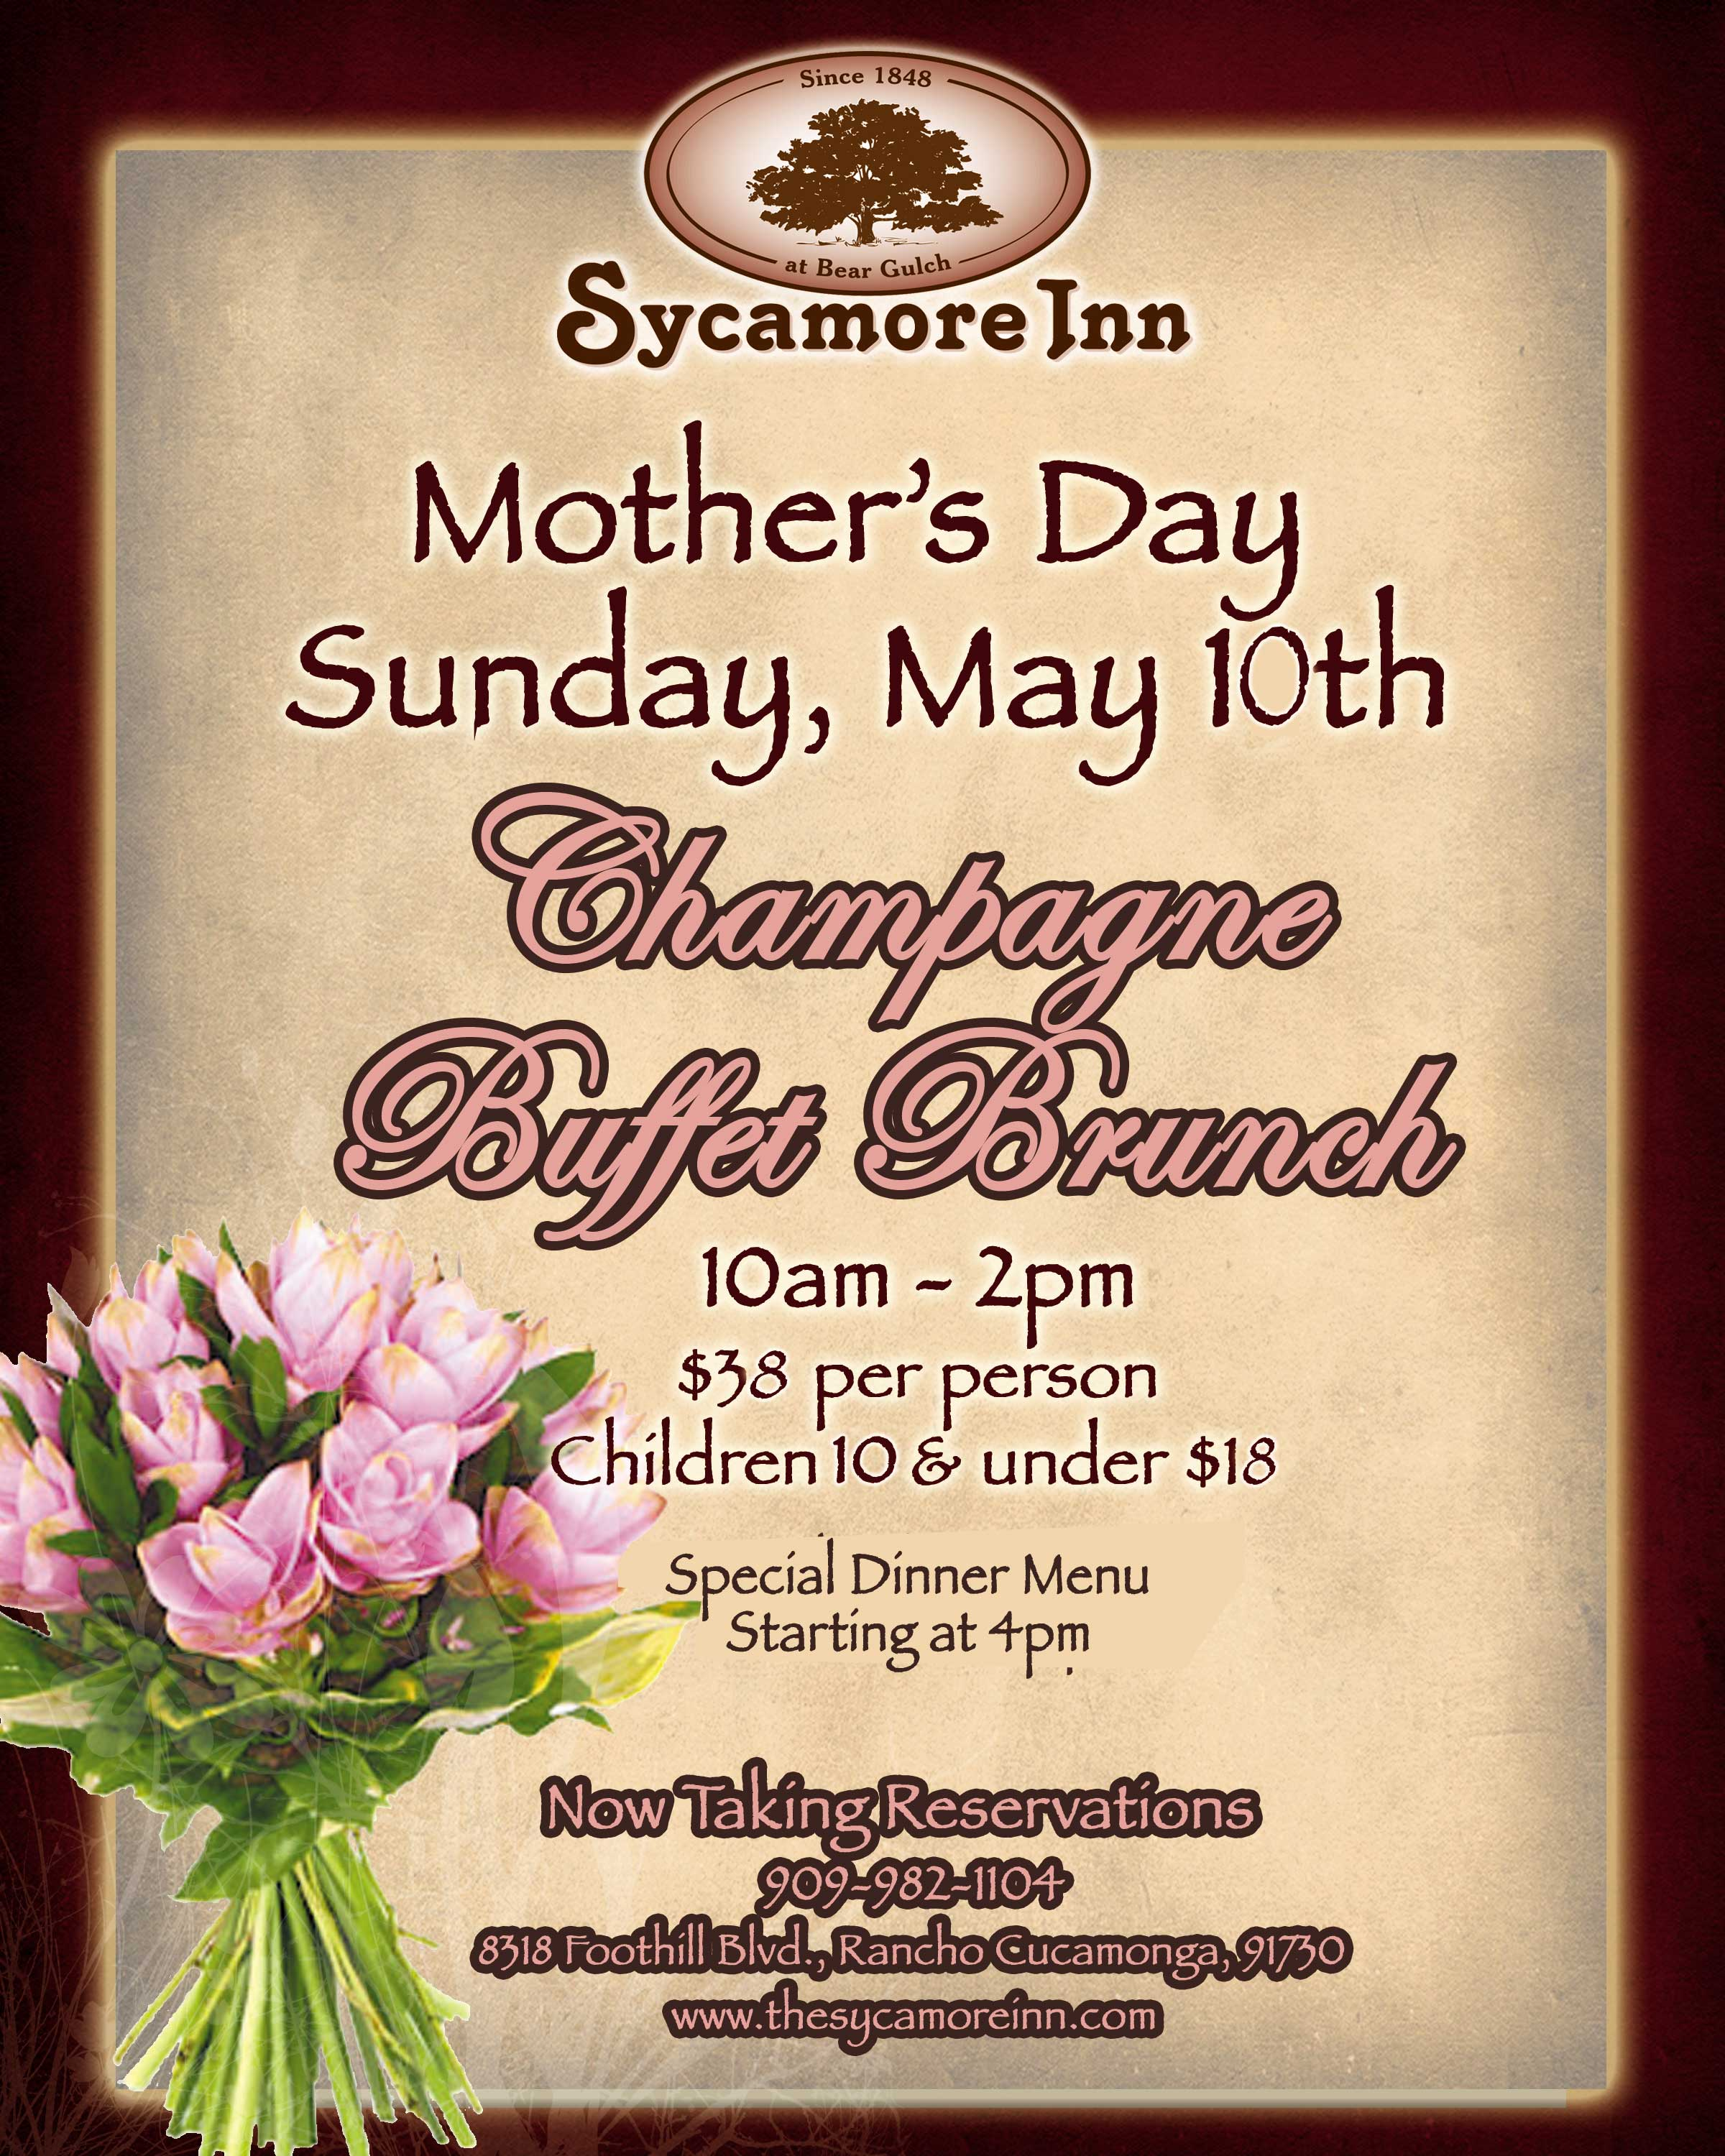 KAY: Cafe sevilla mothers day brunch